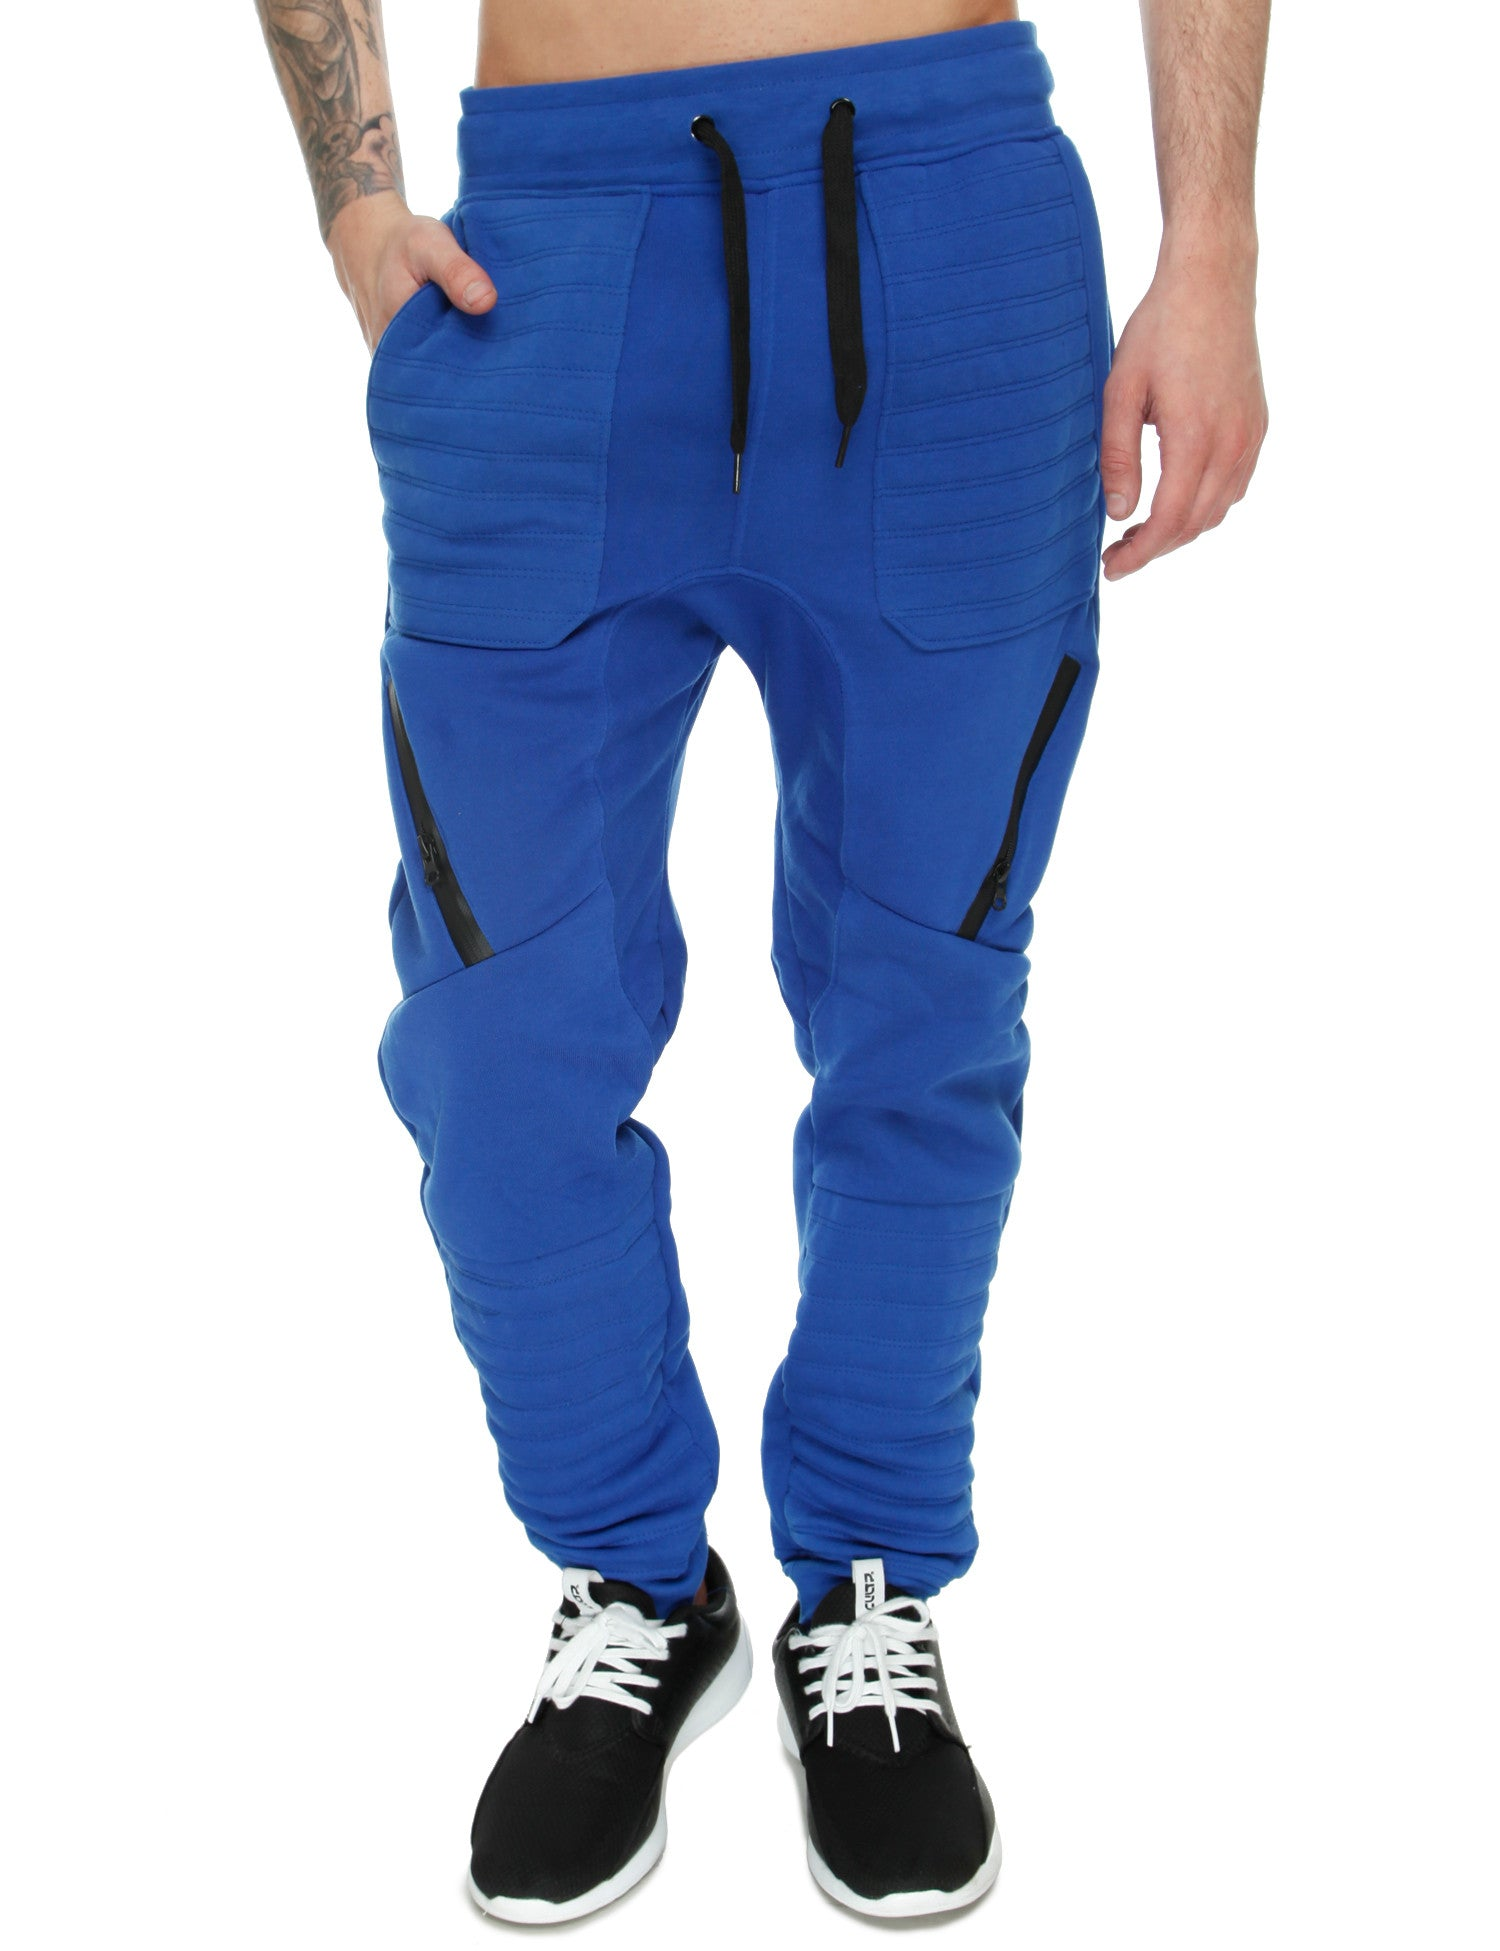 Switch Drop Crotch Sweatpant SF5455 Royal Blue